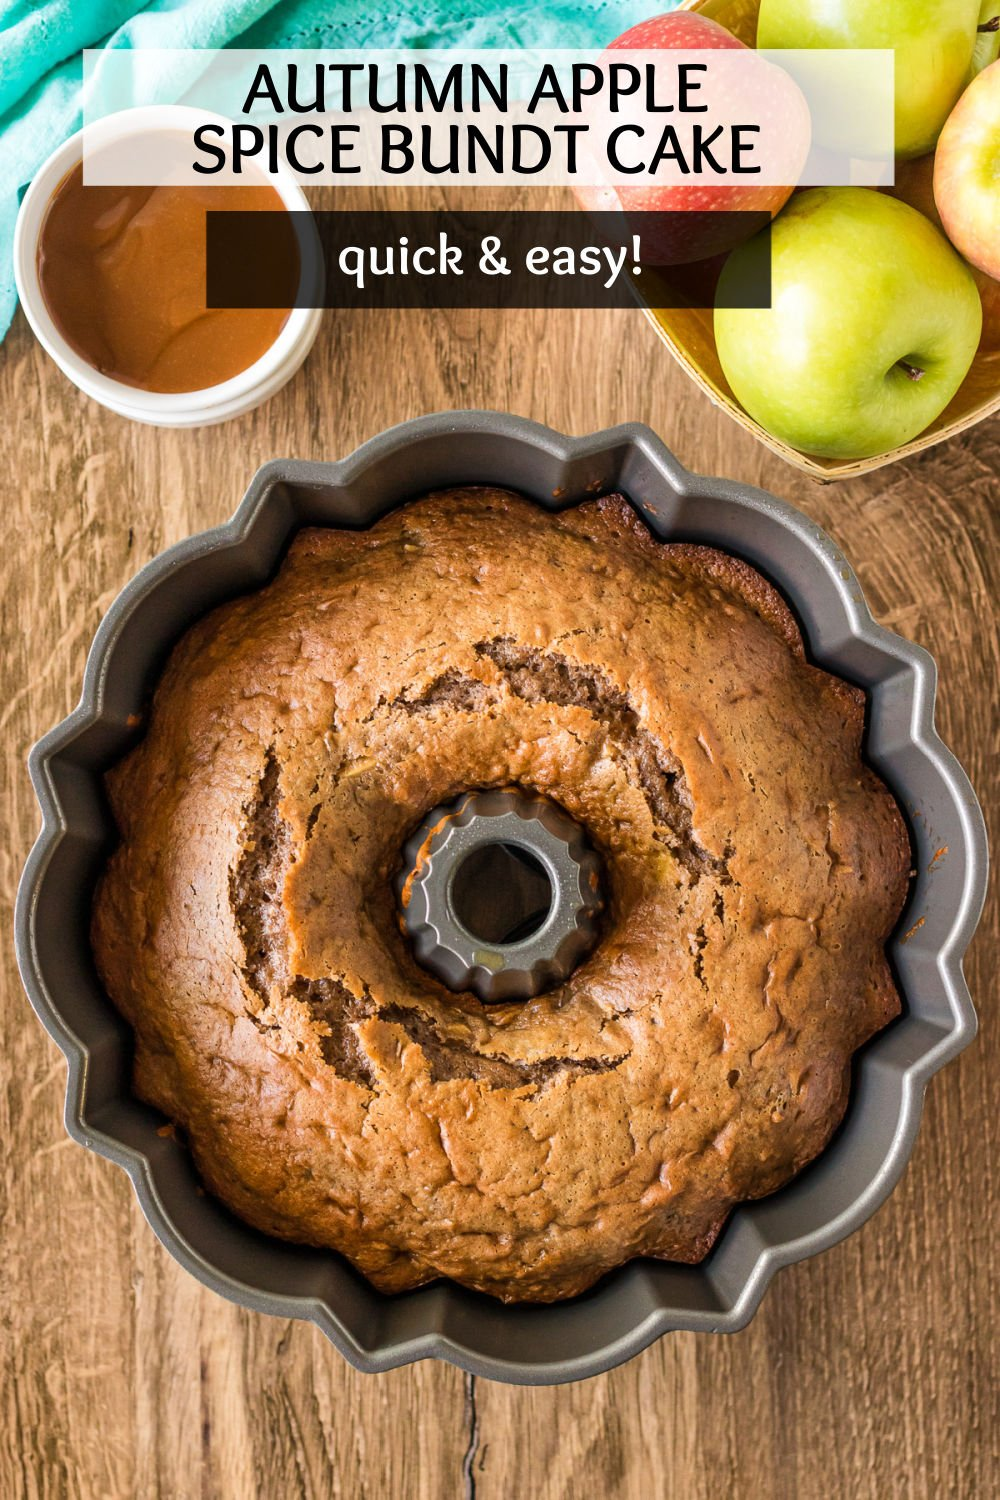 This autumn caramel apple pecan & cinnamon spice bundt cake starts with a cake mix so it's extra easy. Served warm with a scoop of vanilla ice cream and drizzled with caramel sauce, you'll love this fall dessert. | www.persnicketyplates.com